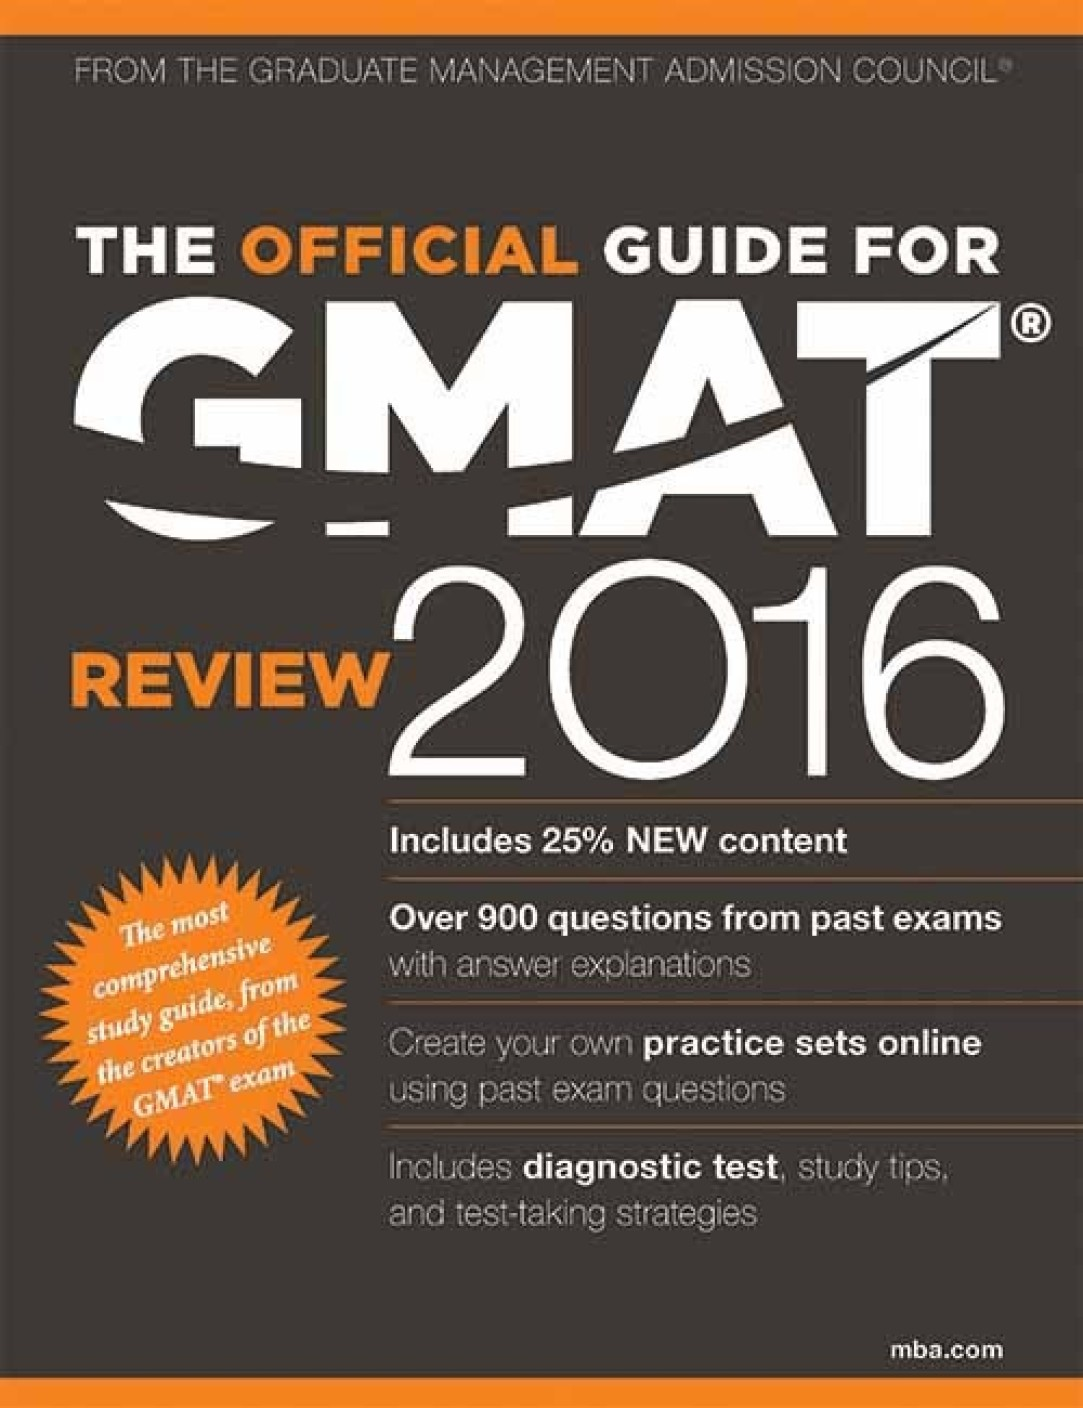 GMAT Studying Guide | How To Study For The GMAT (A Better Way)